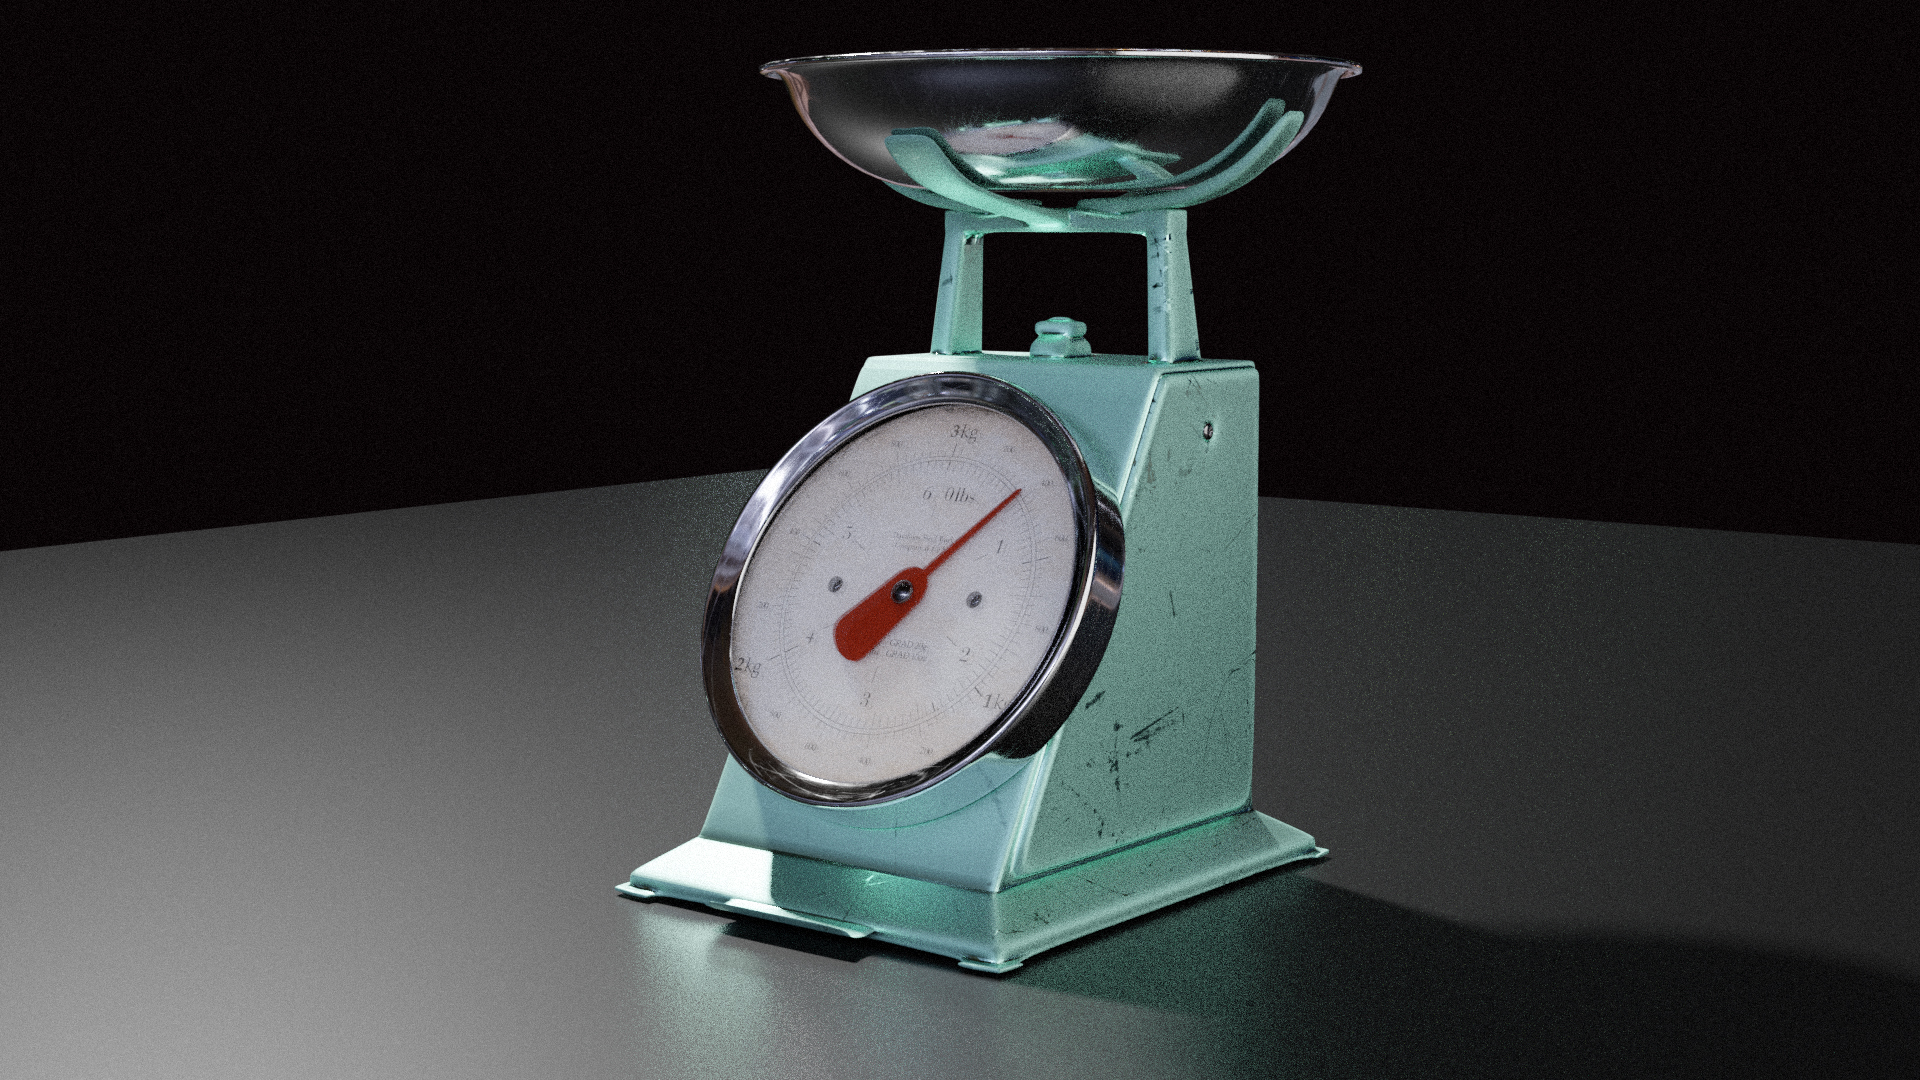 Old / Vintage Kitchen Scale (Scenefiller) by Davilion preview image 2